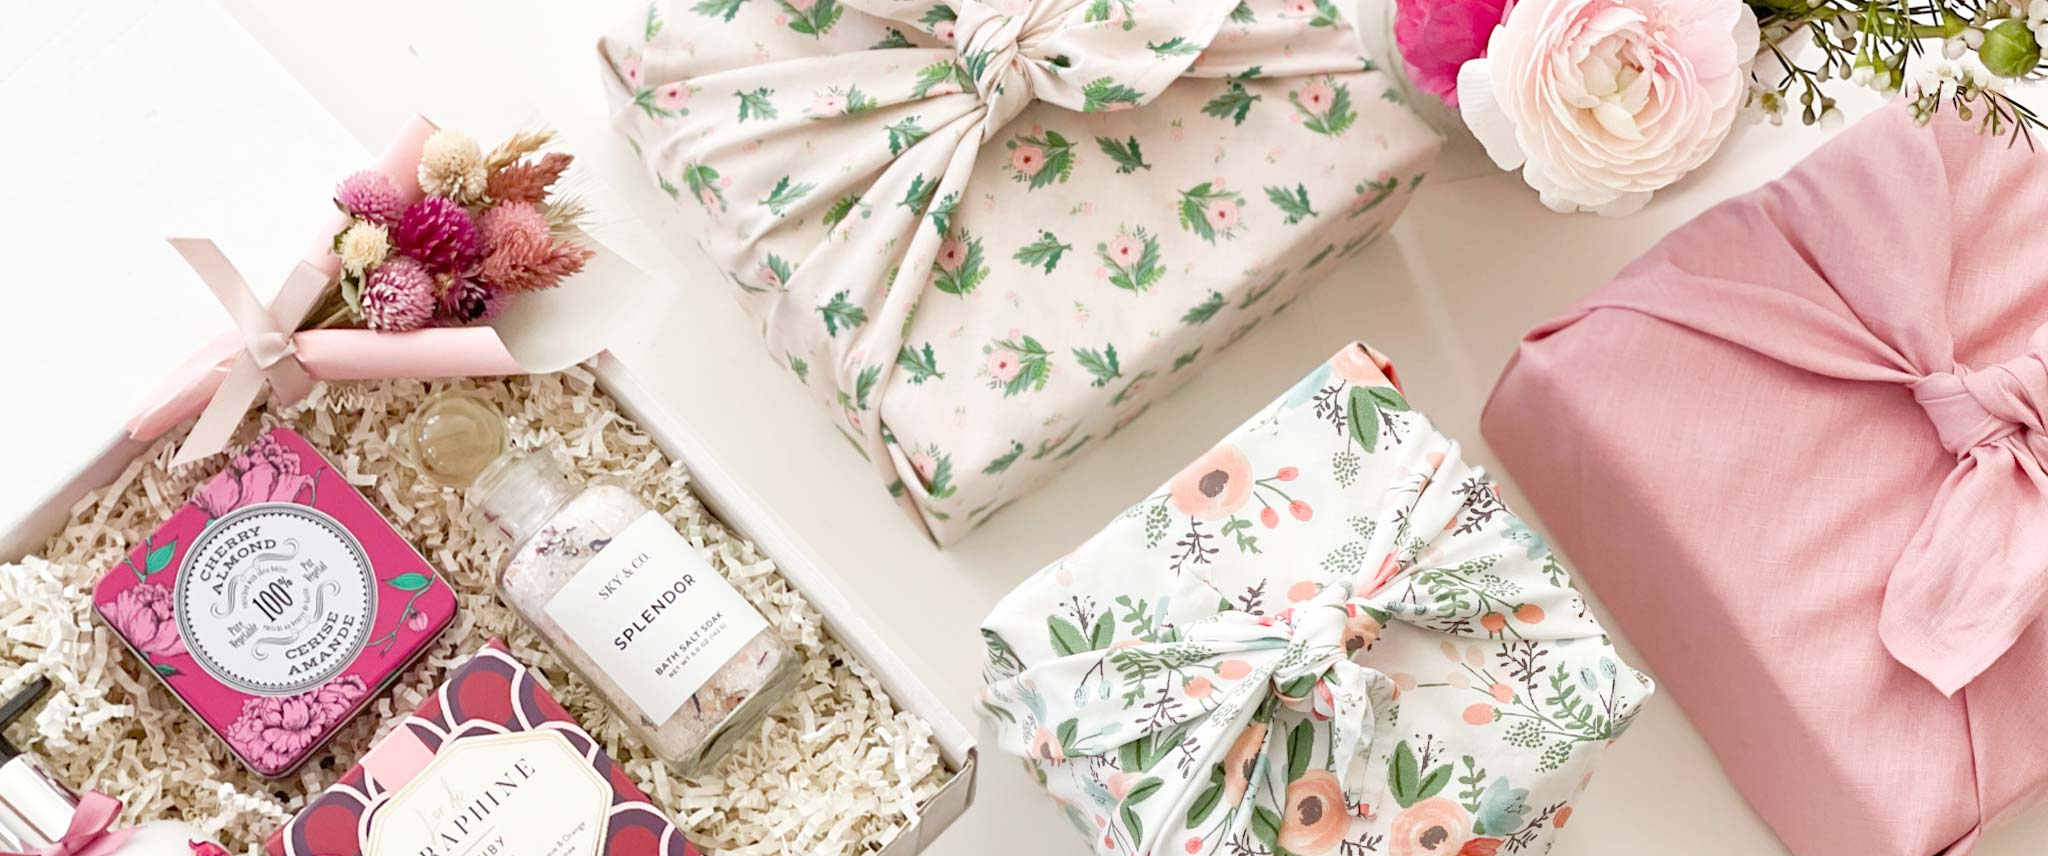 Wedding party and bridal gifts for bride to be, bridesmaid and newly engaged